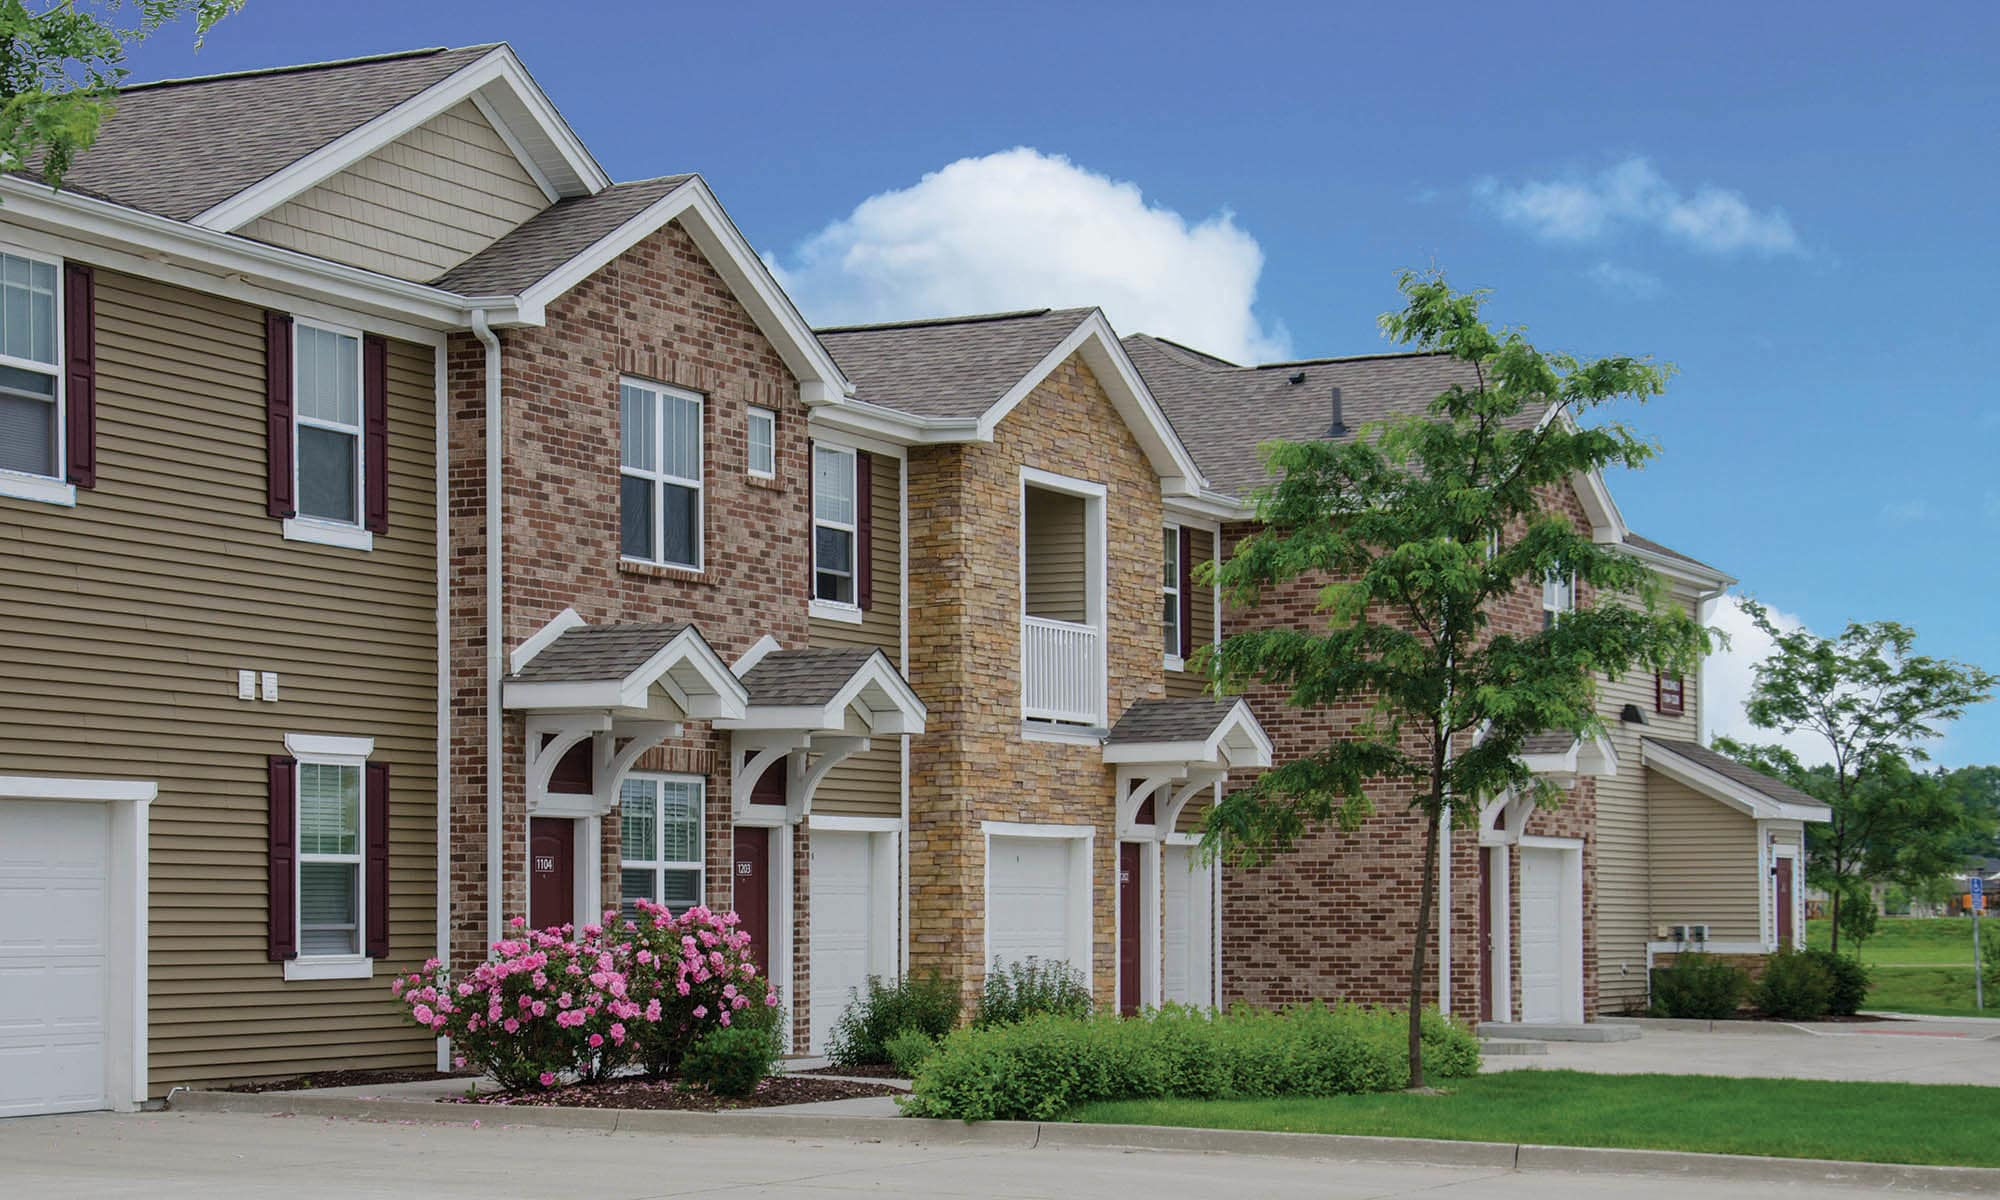 west des moines ia apartments for rent springs at jordan creek